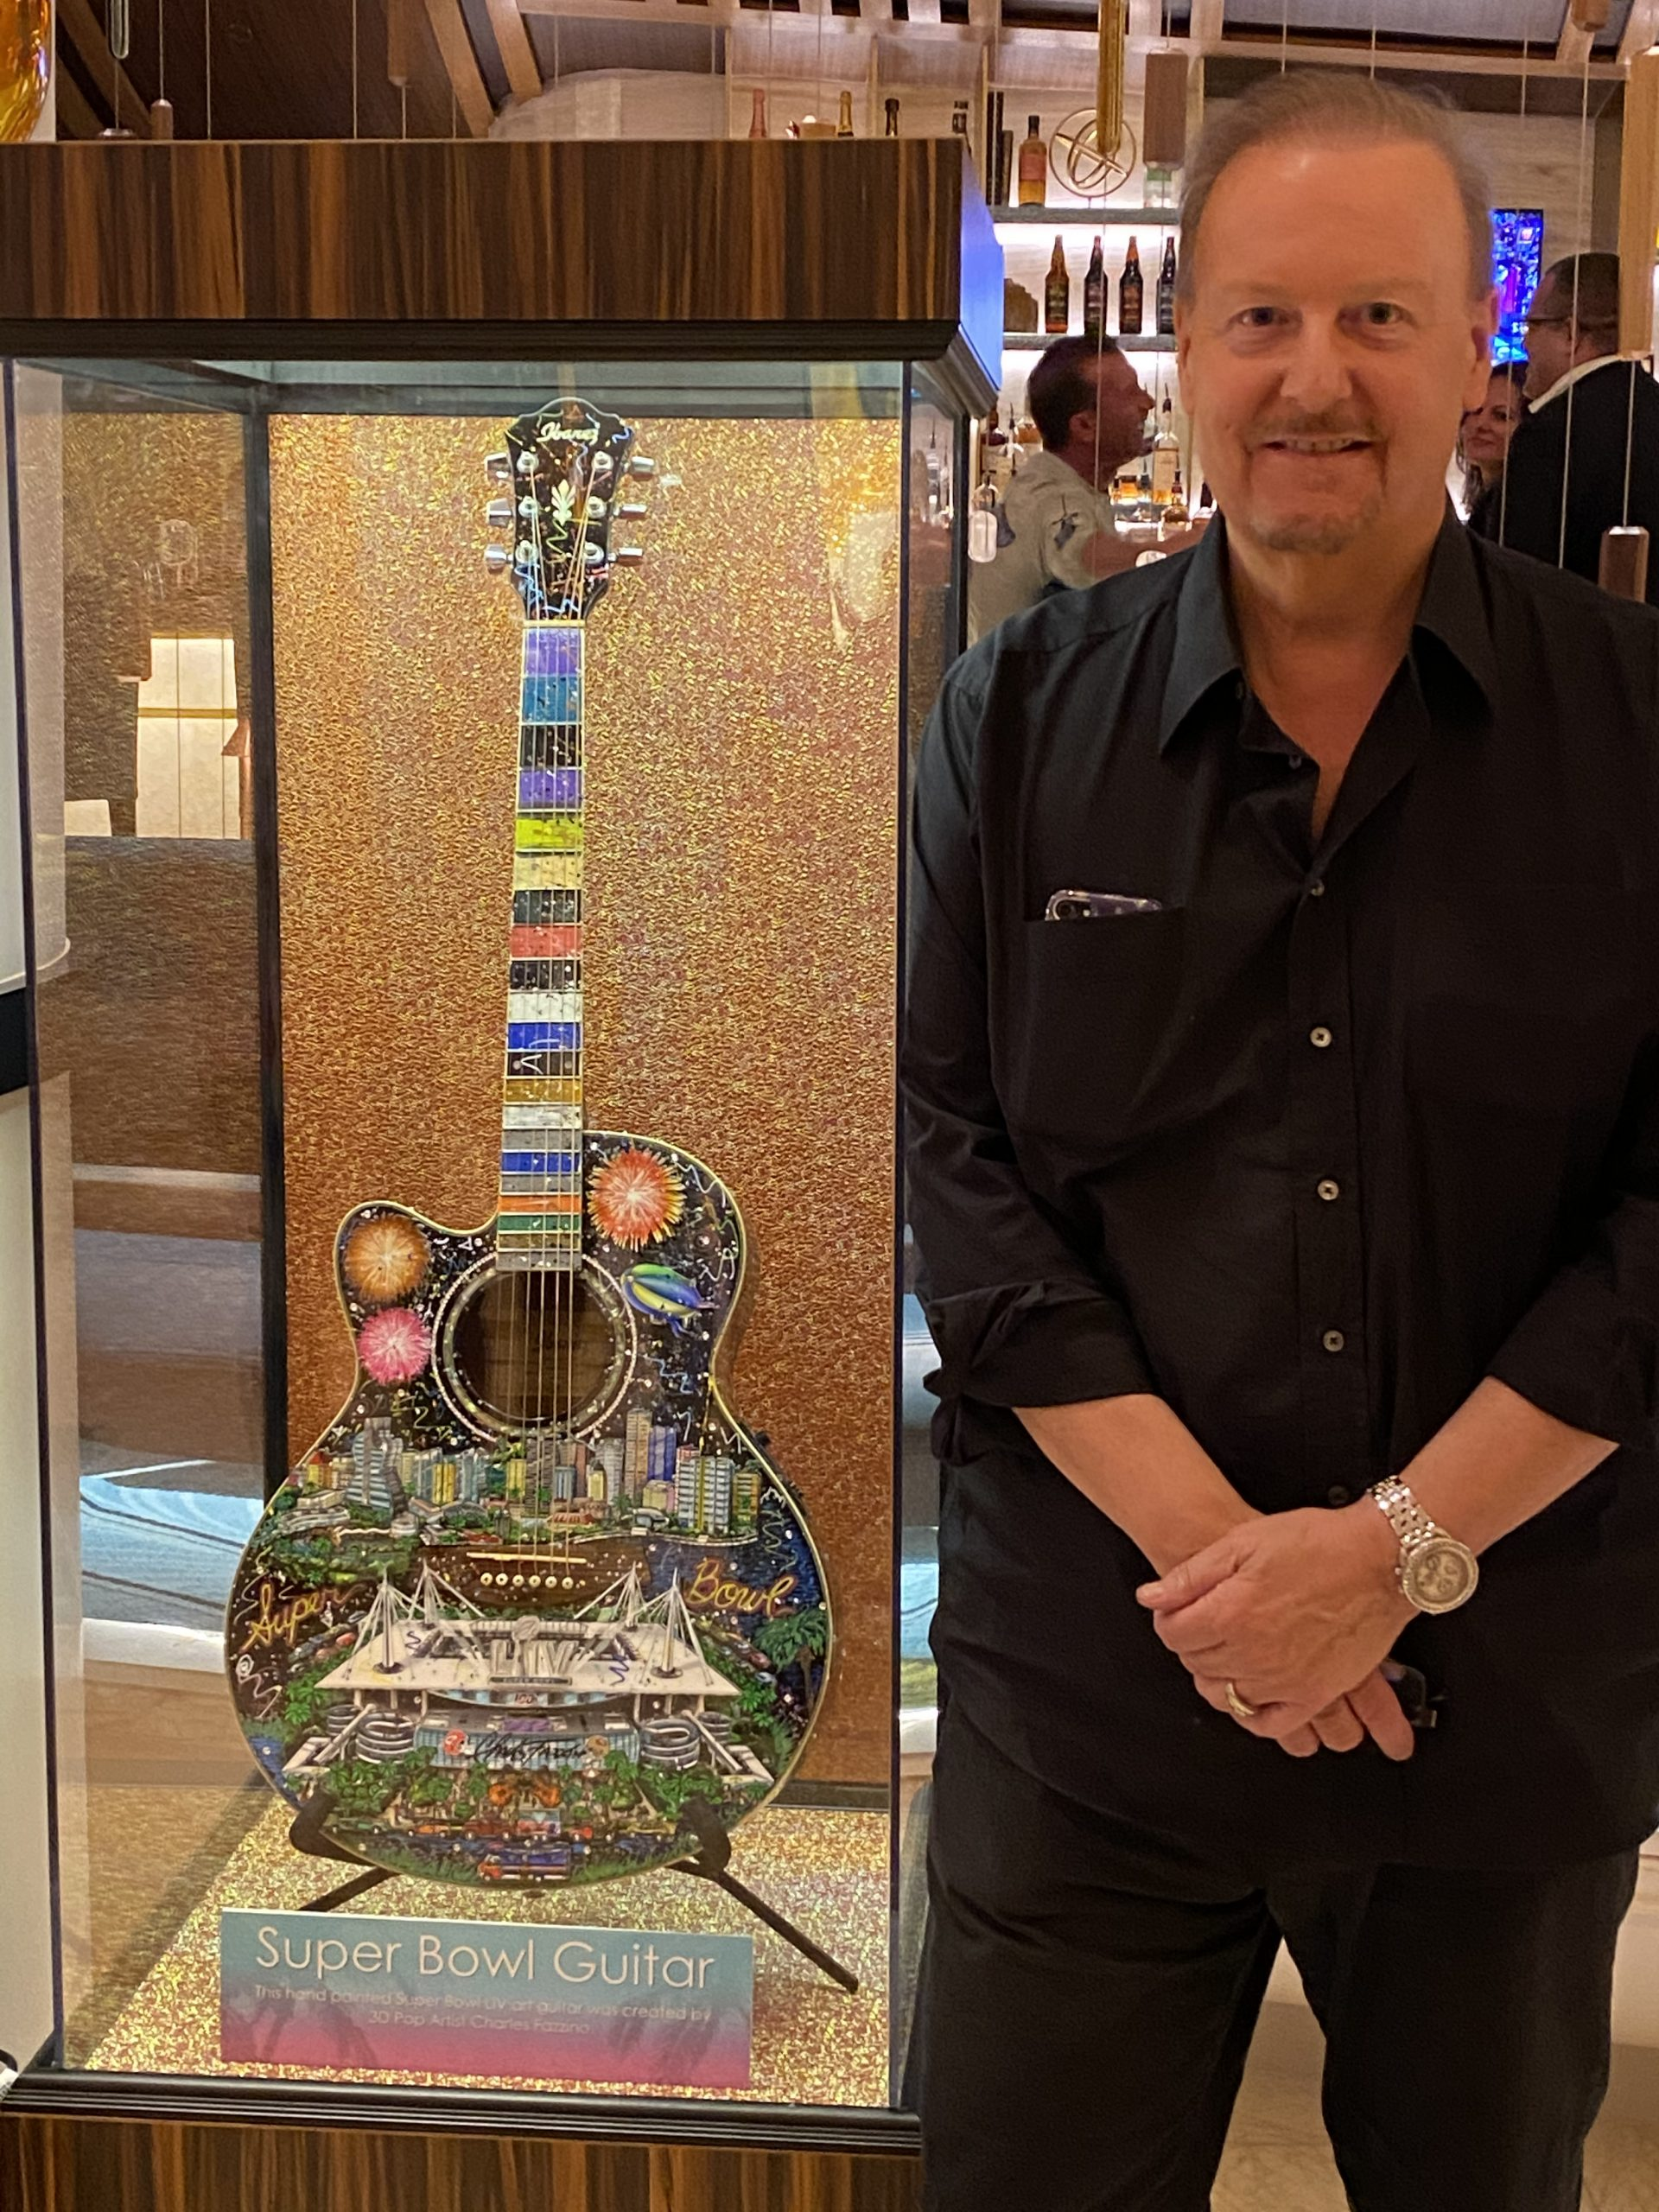 Fazzino standing next to his Super Bowl Guitar